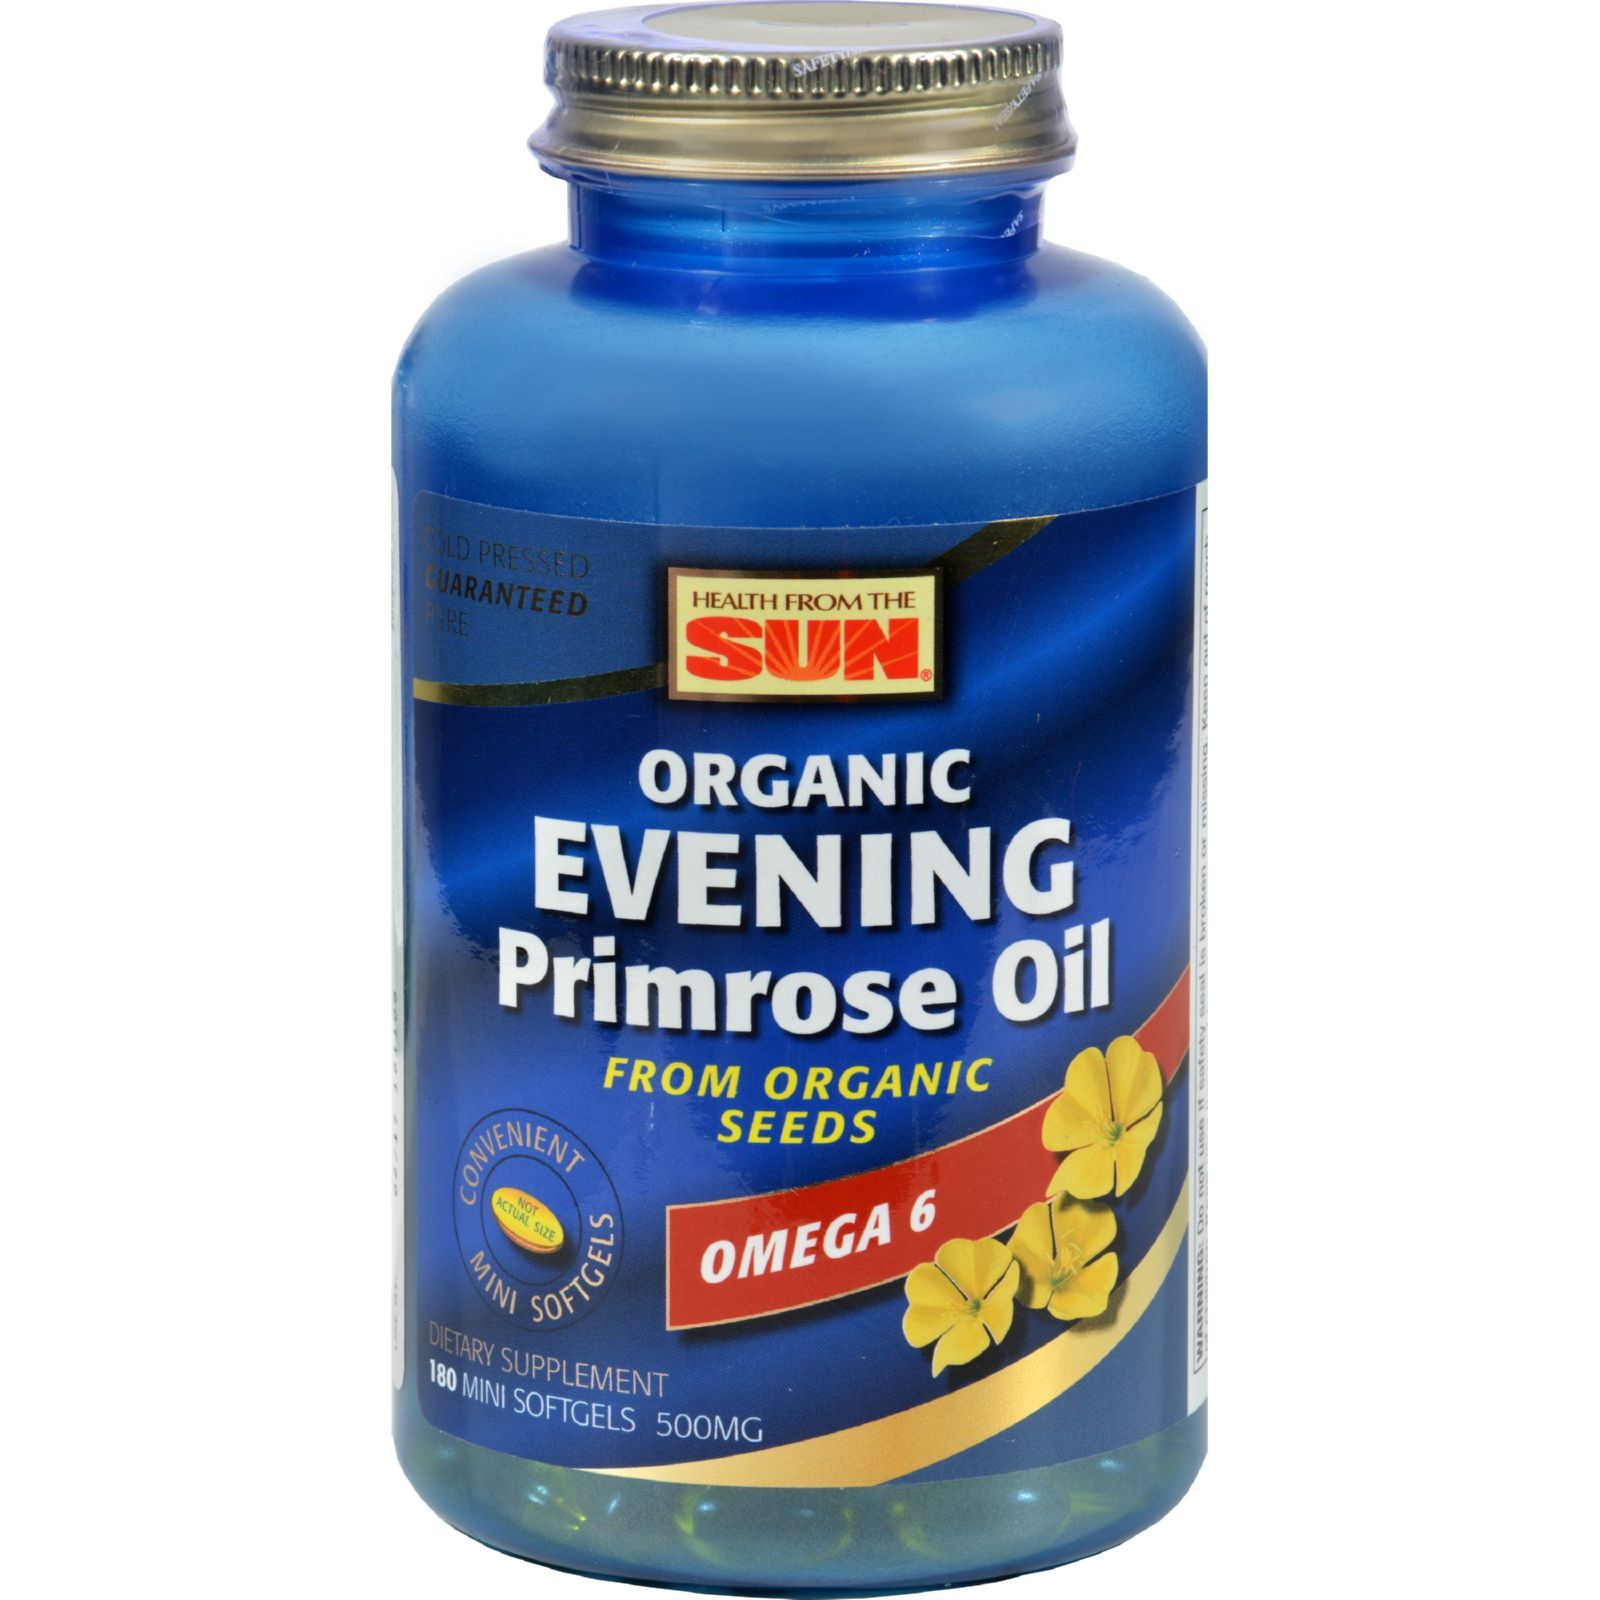 Health From The Sunn, Evening Primrose Oil, Omega-6, 500 mg